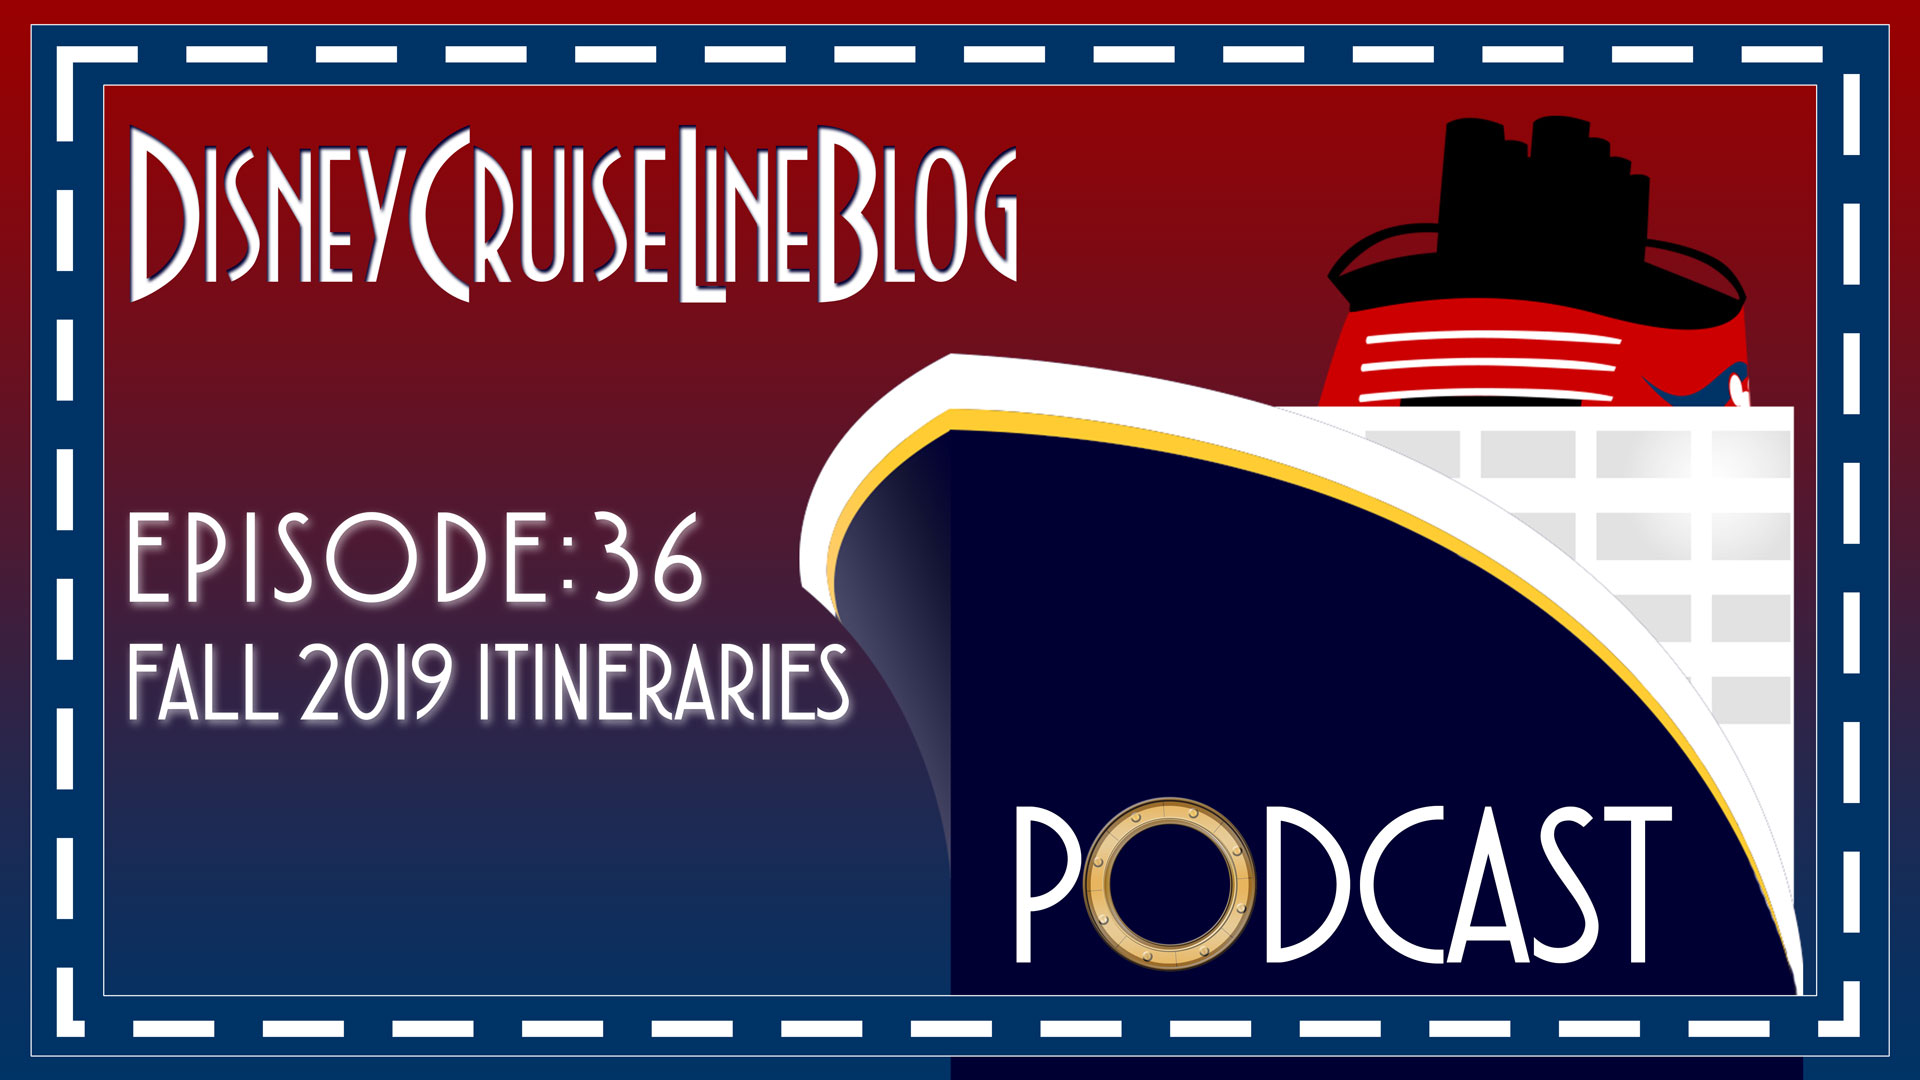 DCL Blog Podcast Episode 36 Fall 2019 Itineraries